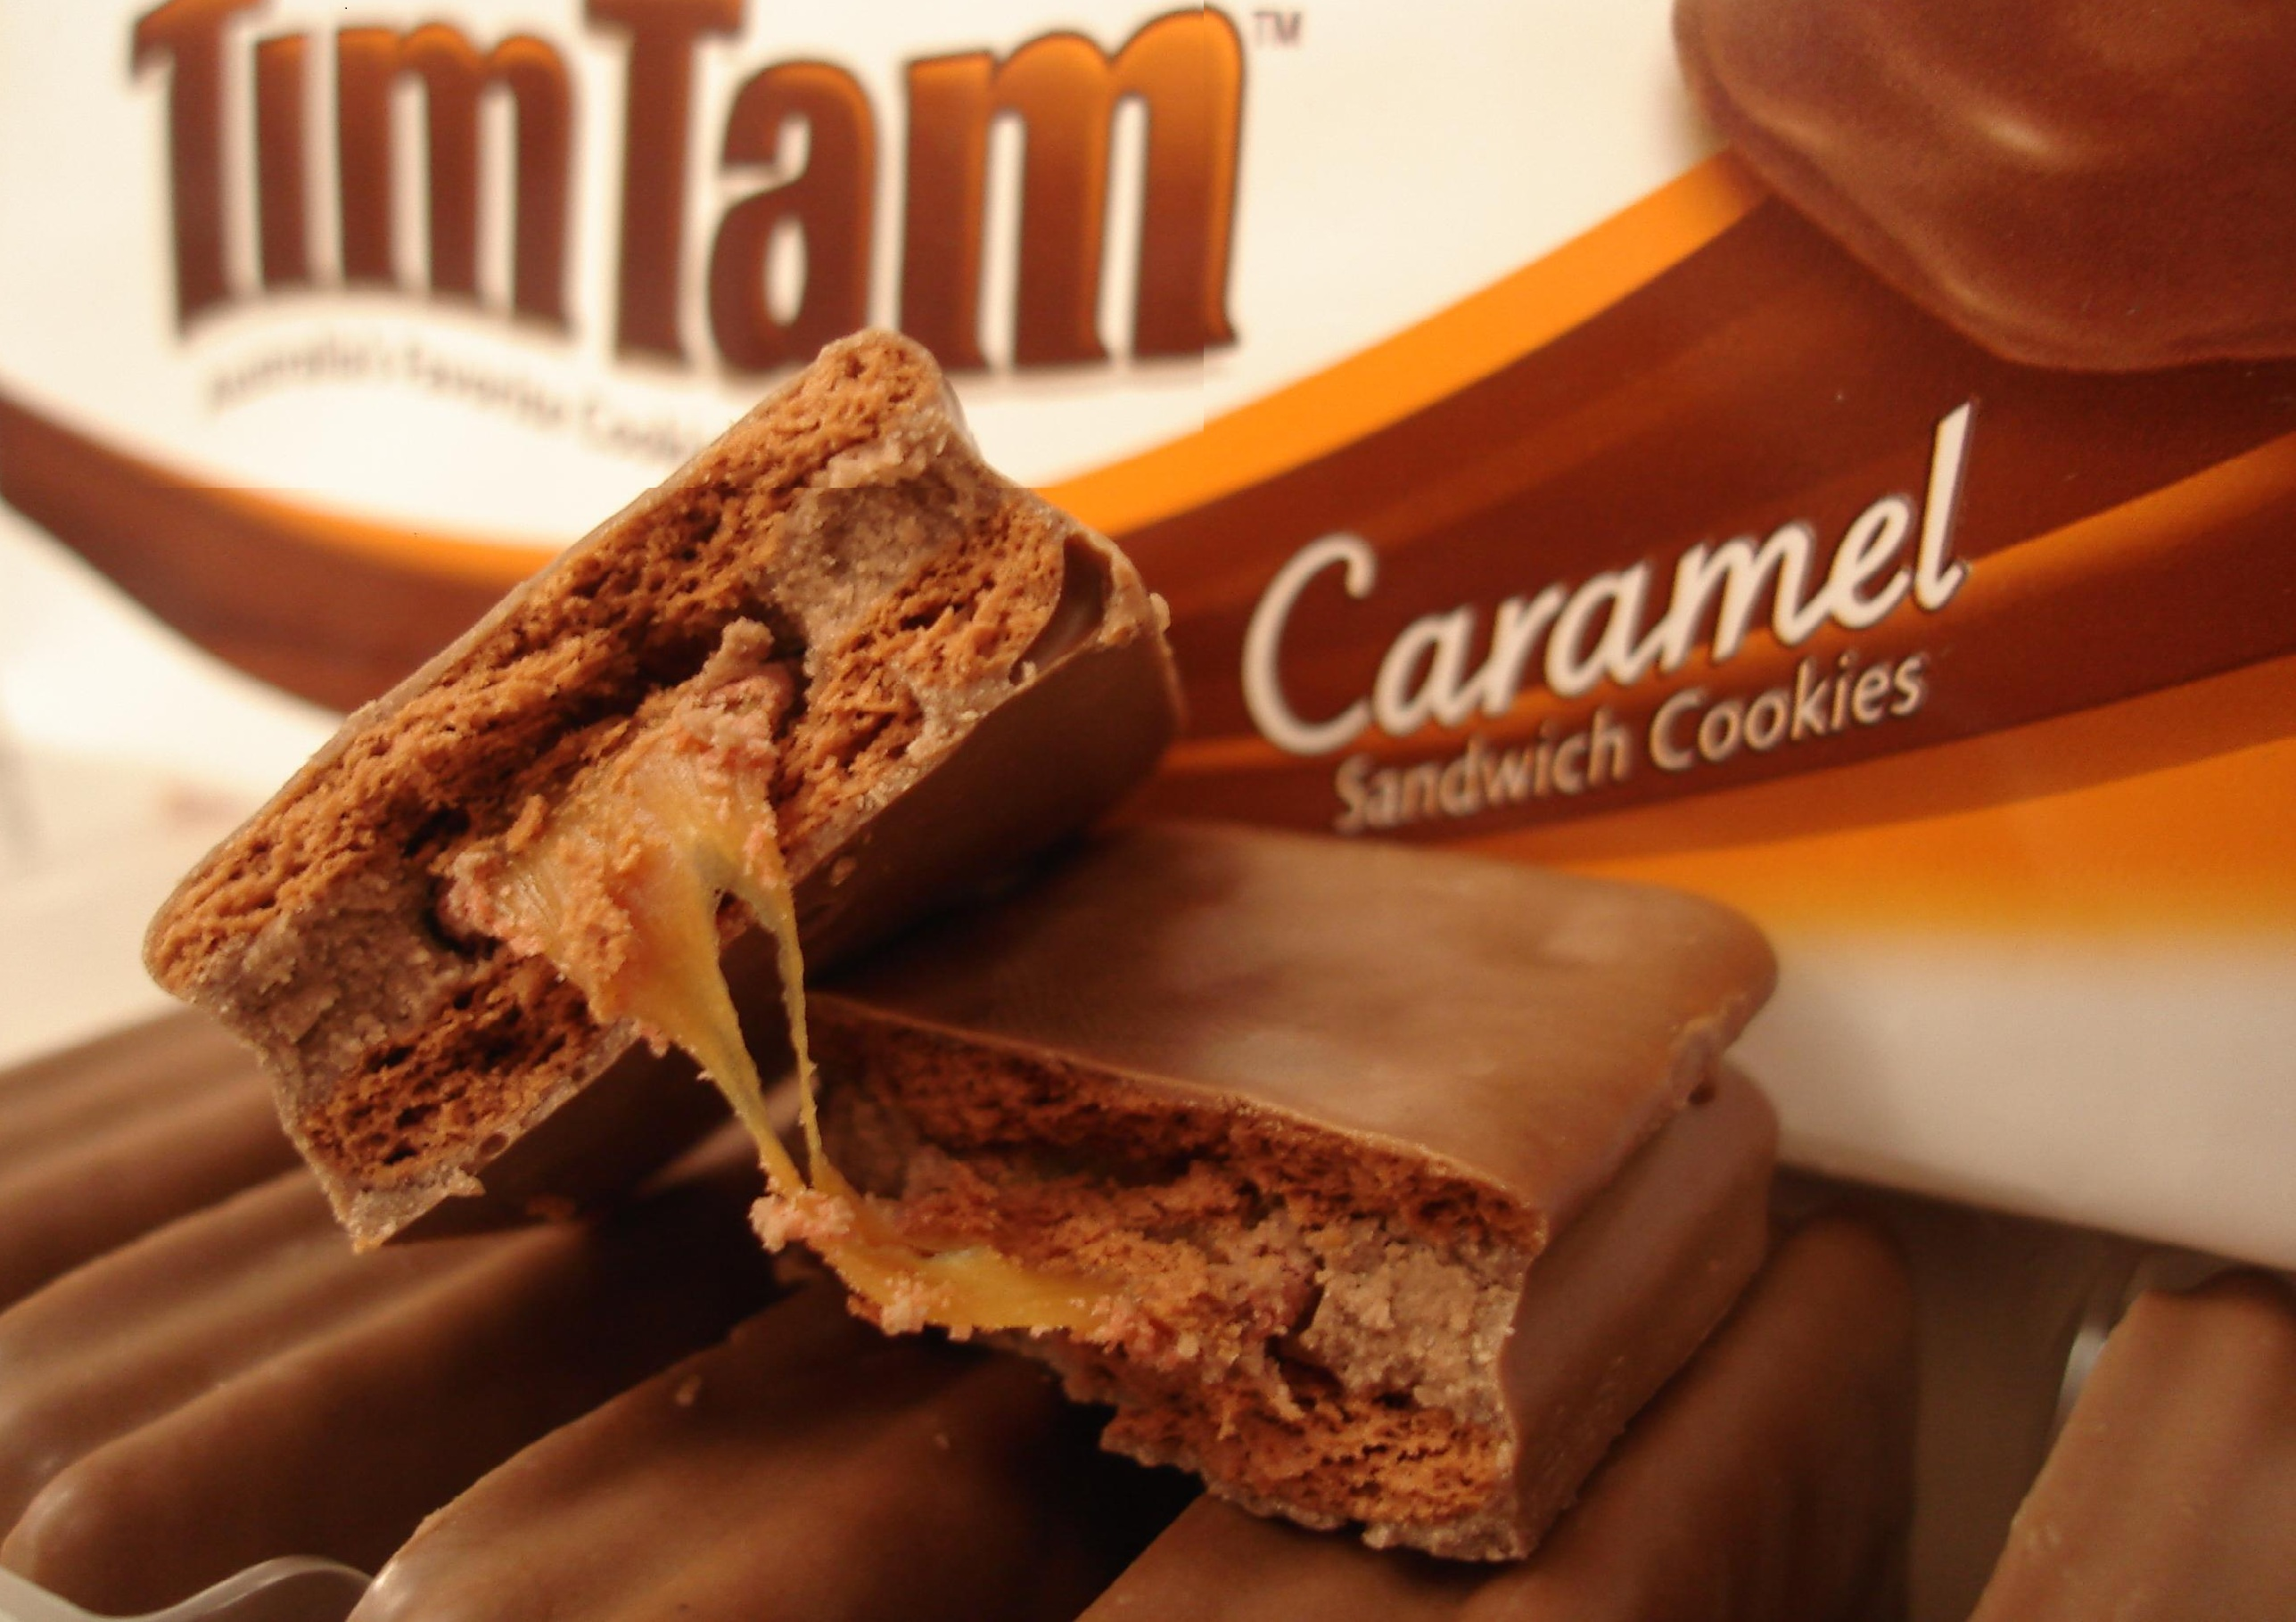 Tim Tams are chocolate covered caramel filled biscuits made in Australia